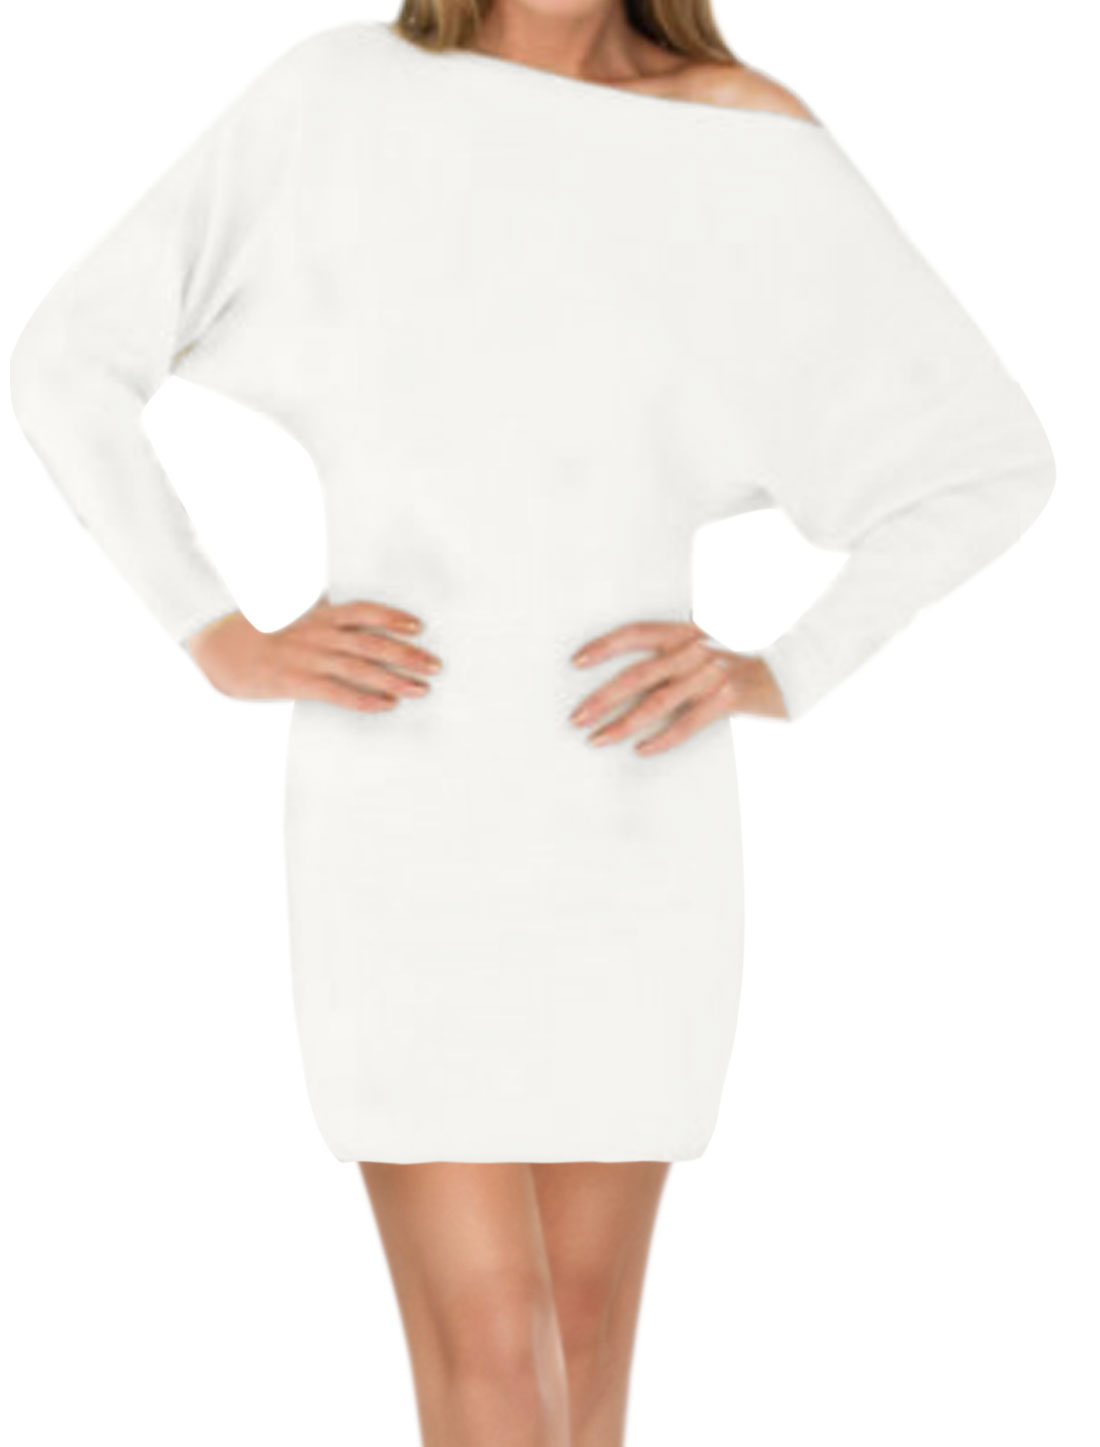 Women Boat Neck Dolman Sleeves Elastic Waist Sheath Dress White M